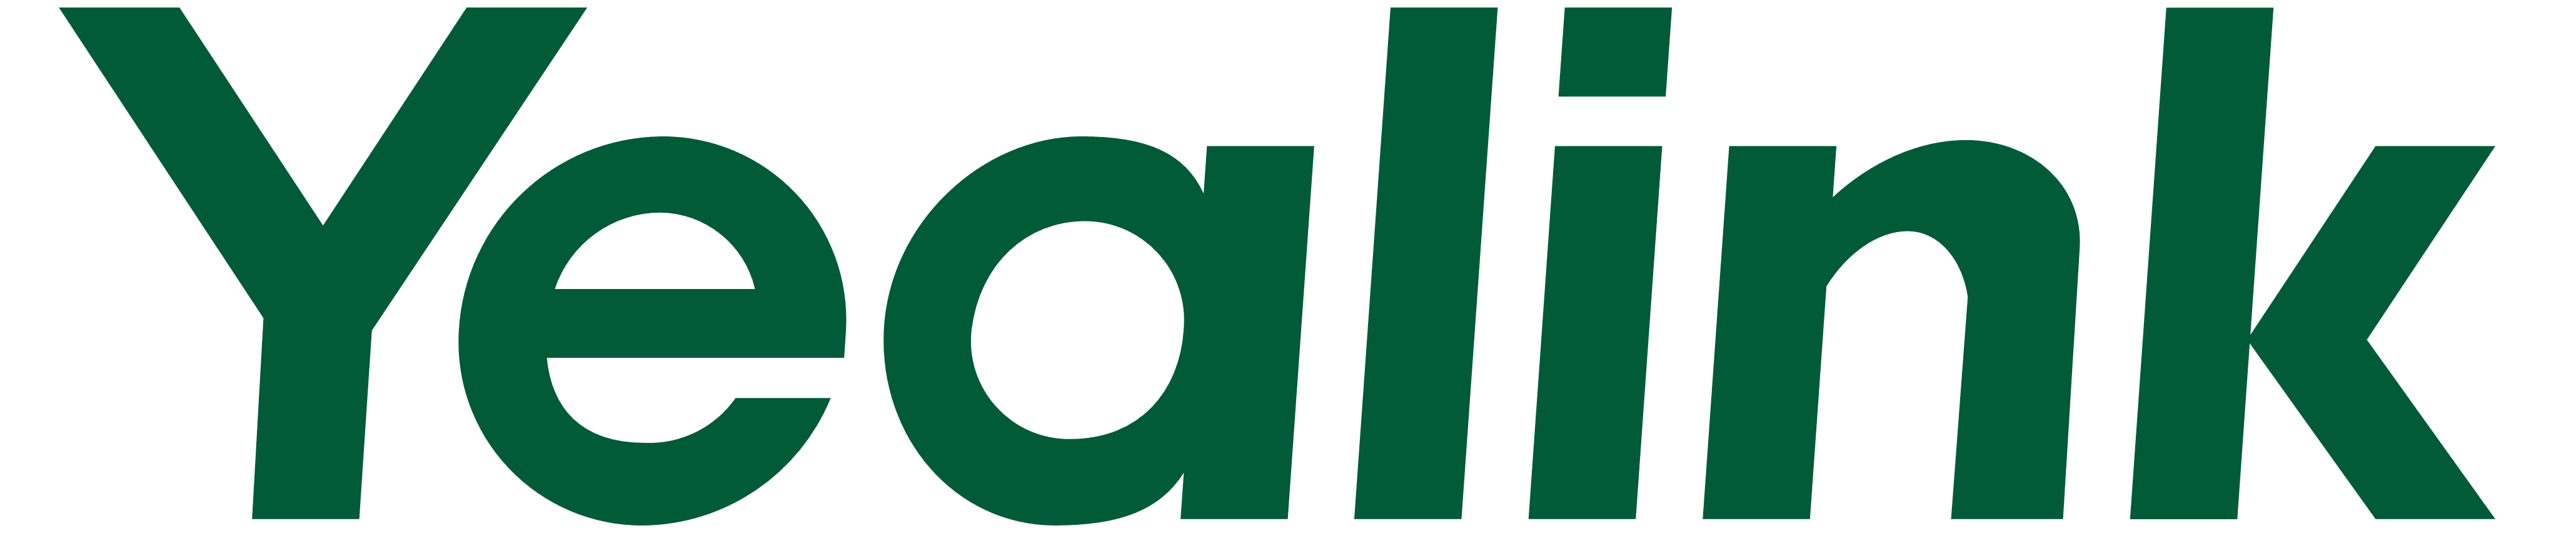 Image result for yealink logo